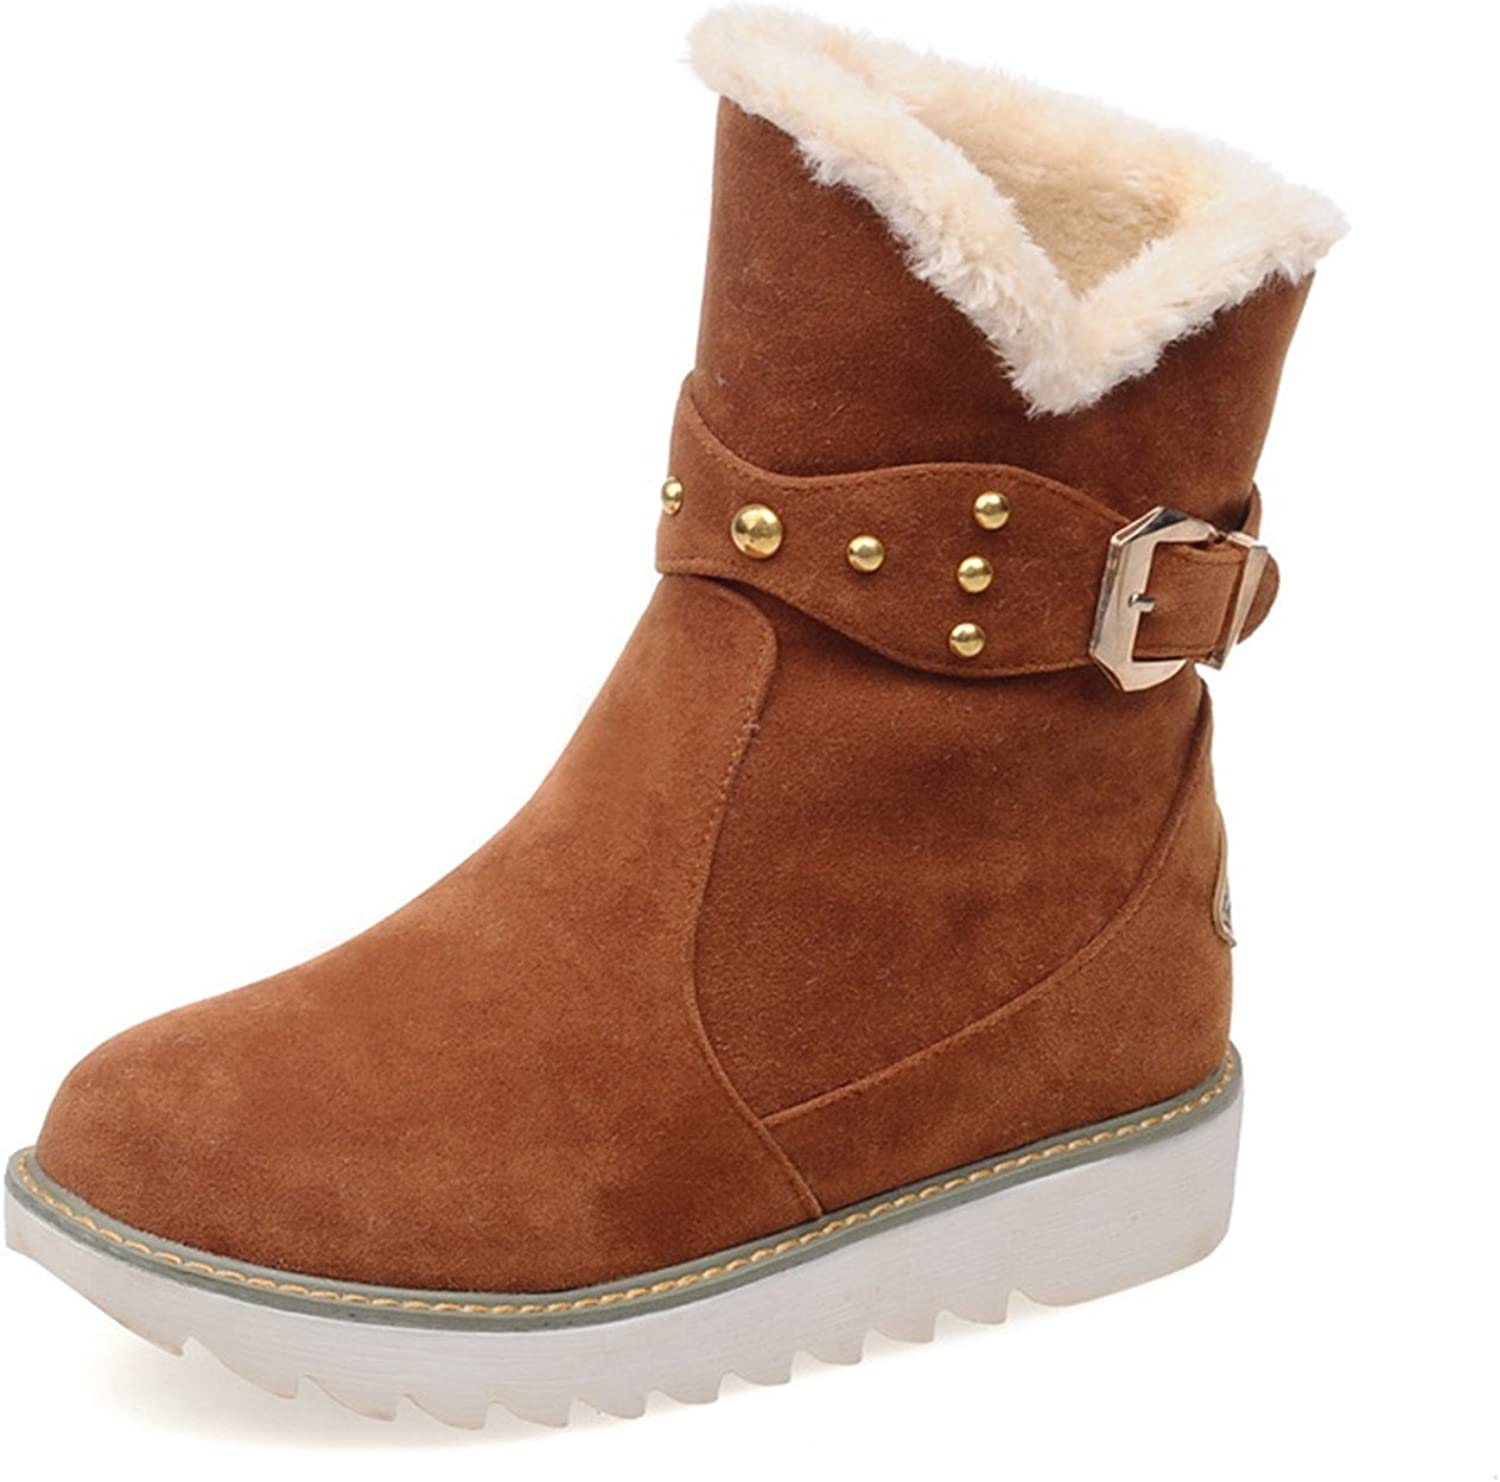 Jeff Tribble Warm Faux Fur Waterproof Snow Boots Women Winter Fashion Ankle Boots Big Size Black Brown Beige color